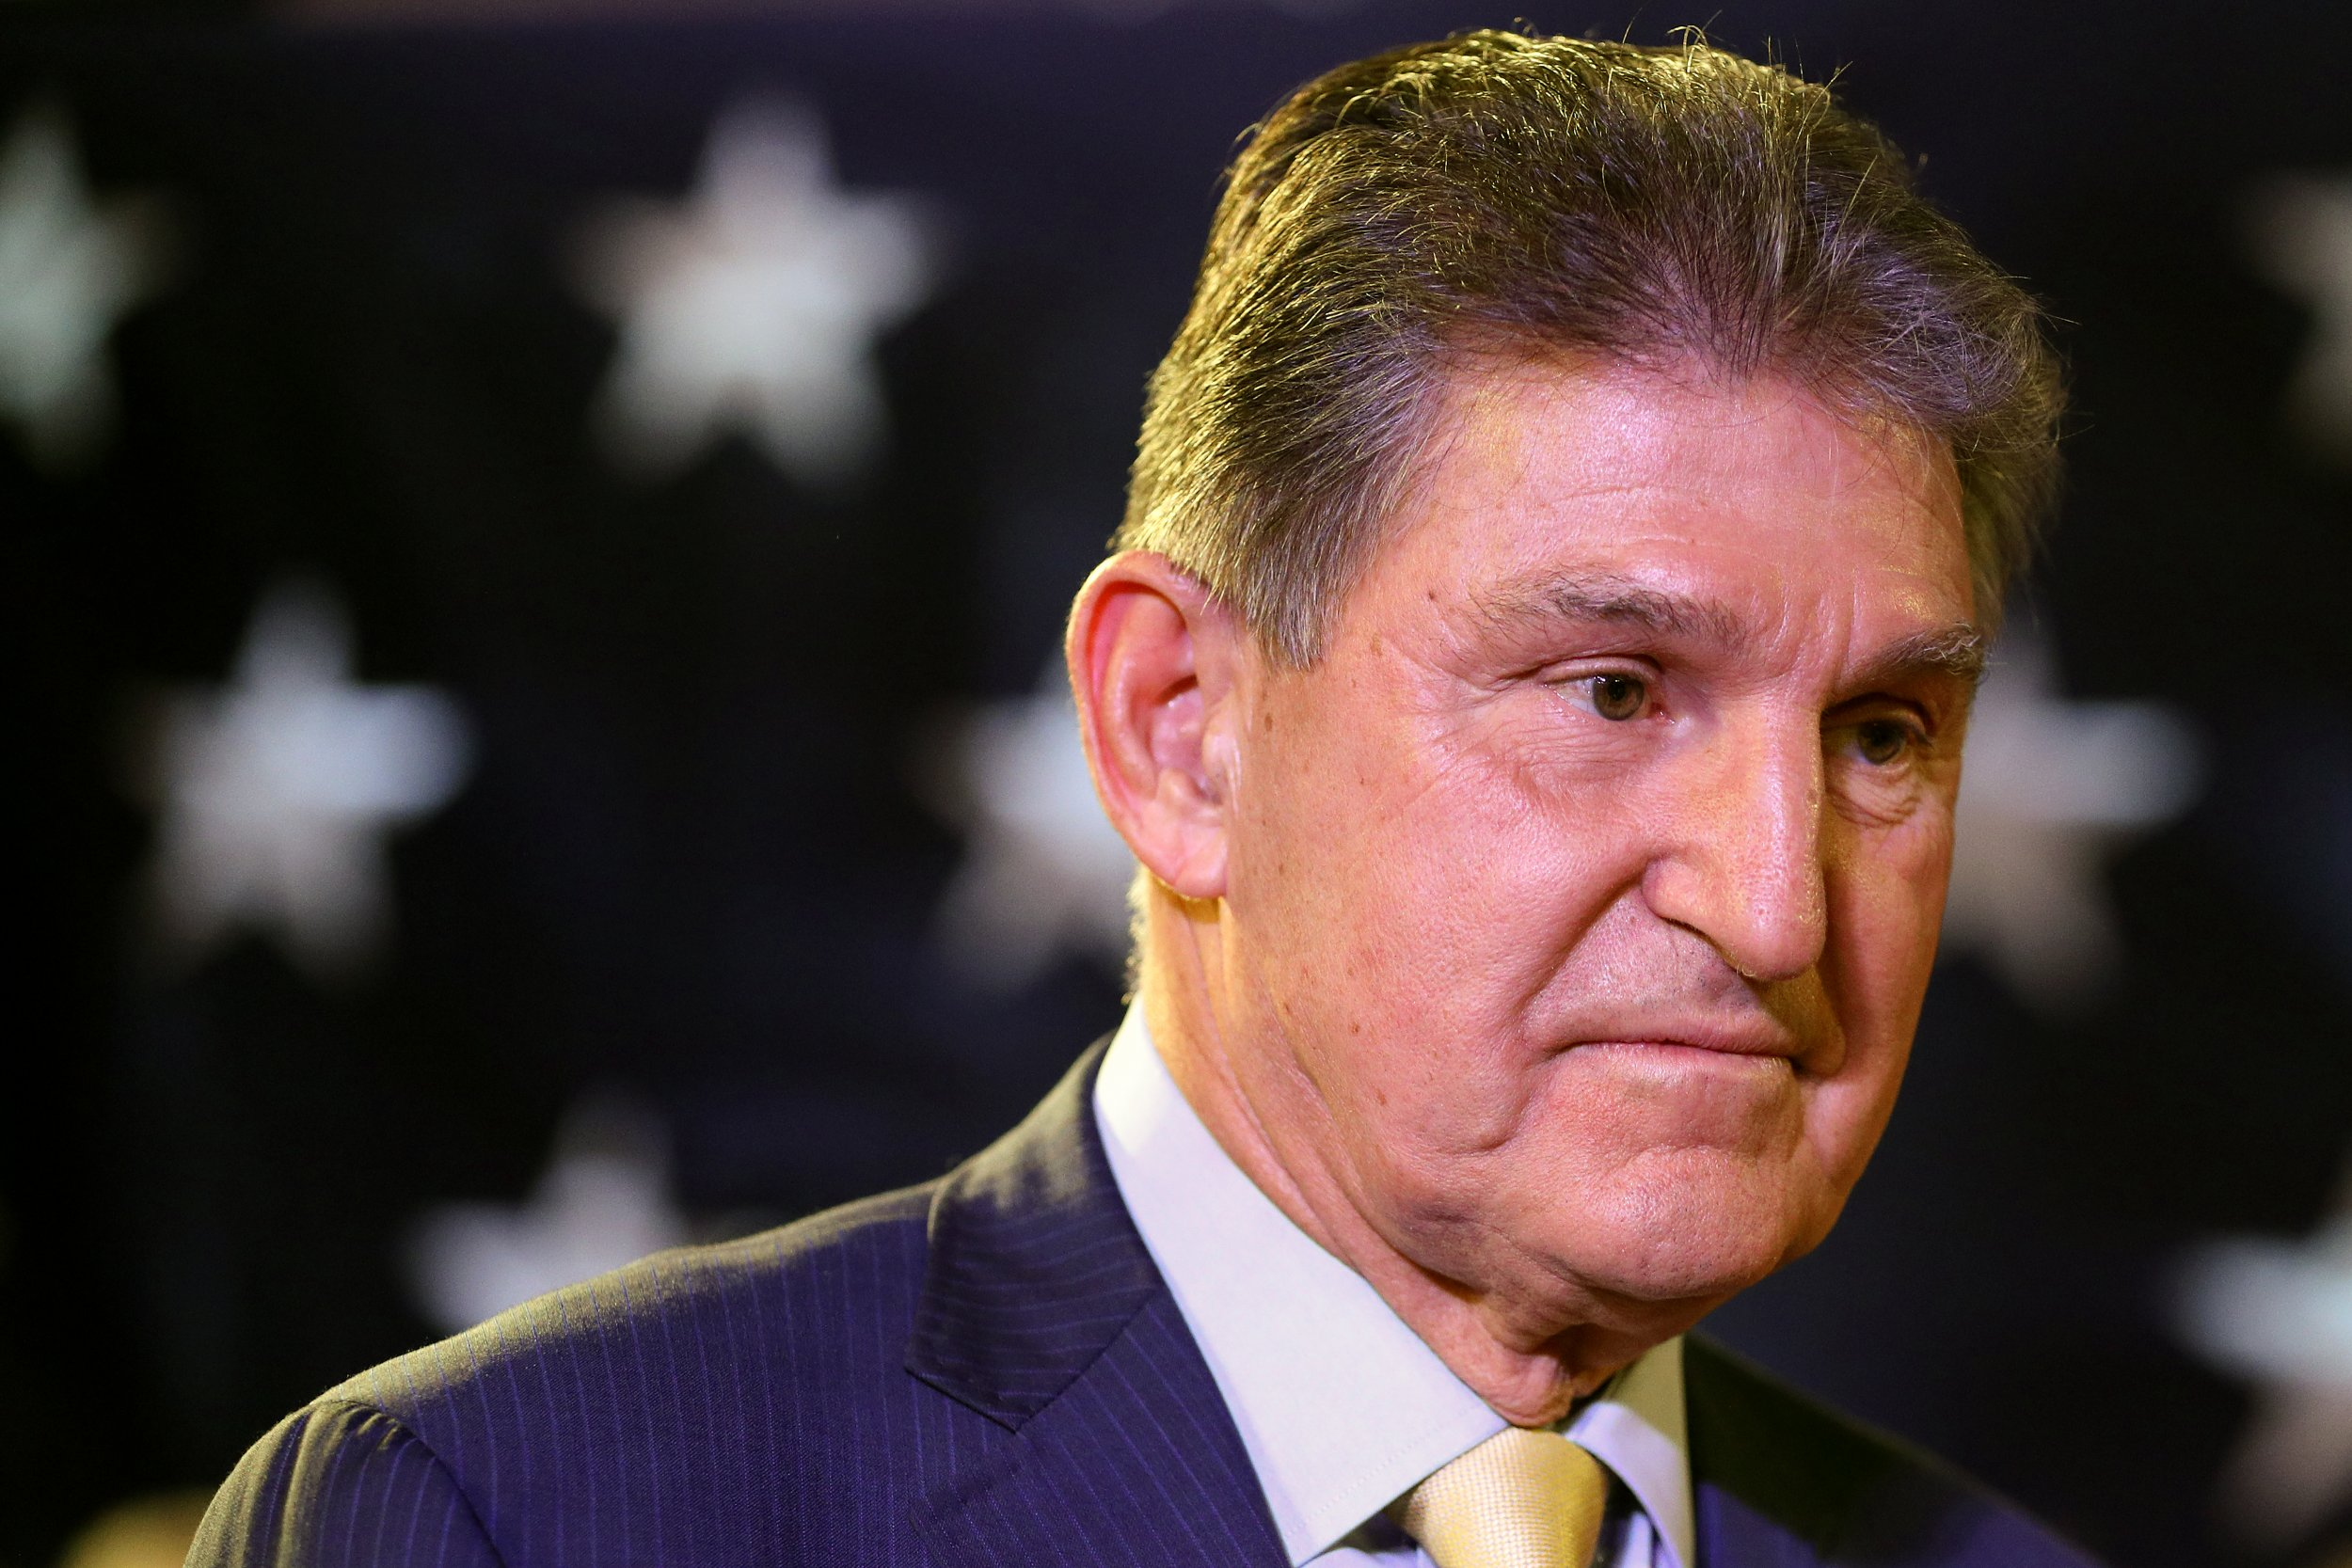 Joe Manchin, William Barr, regret, confirmation, vote